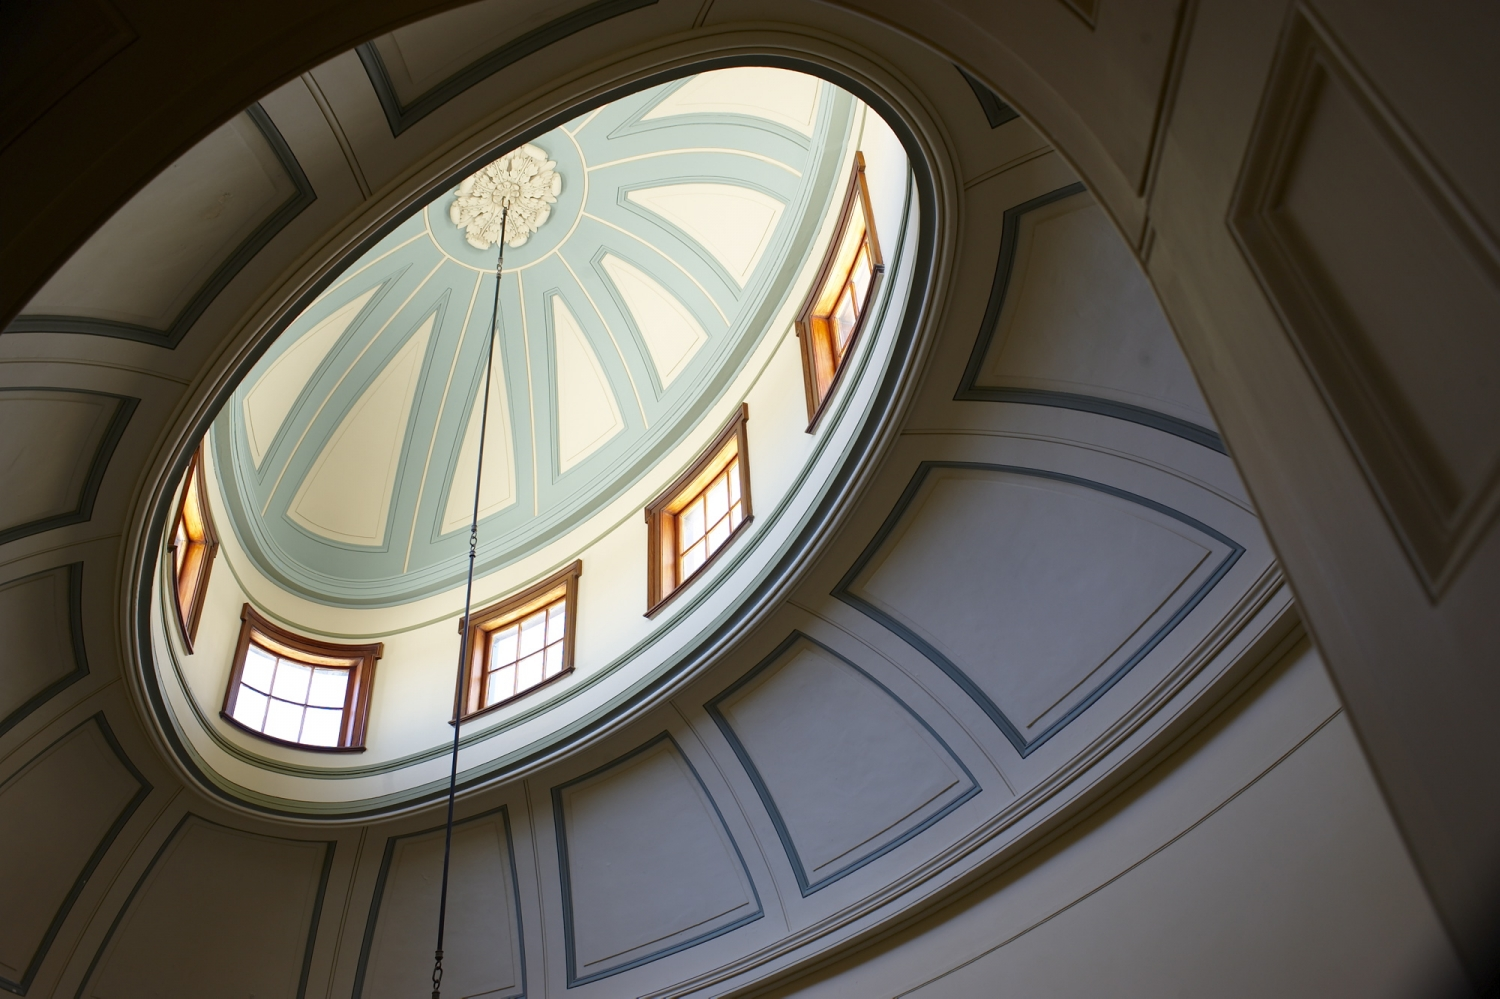 Looking up into naturally lit oval shaped dome.